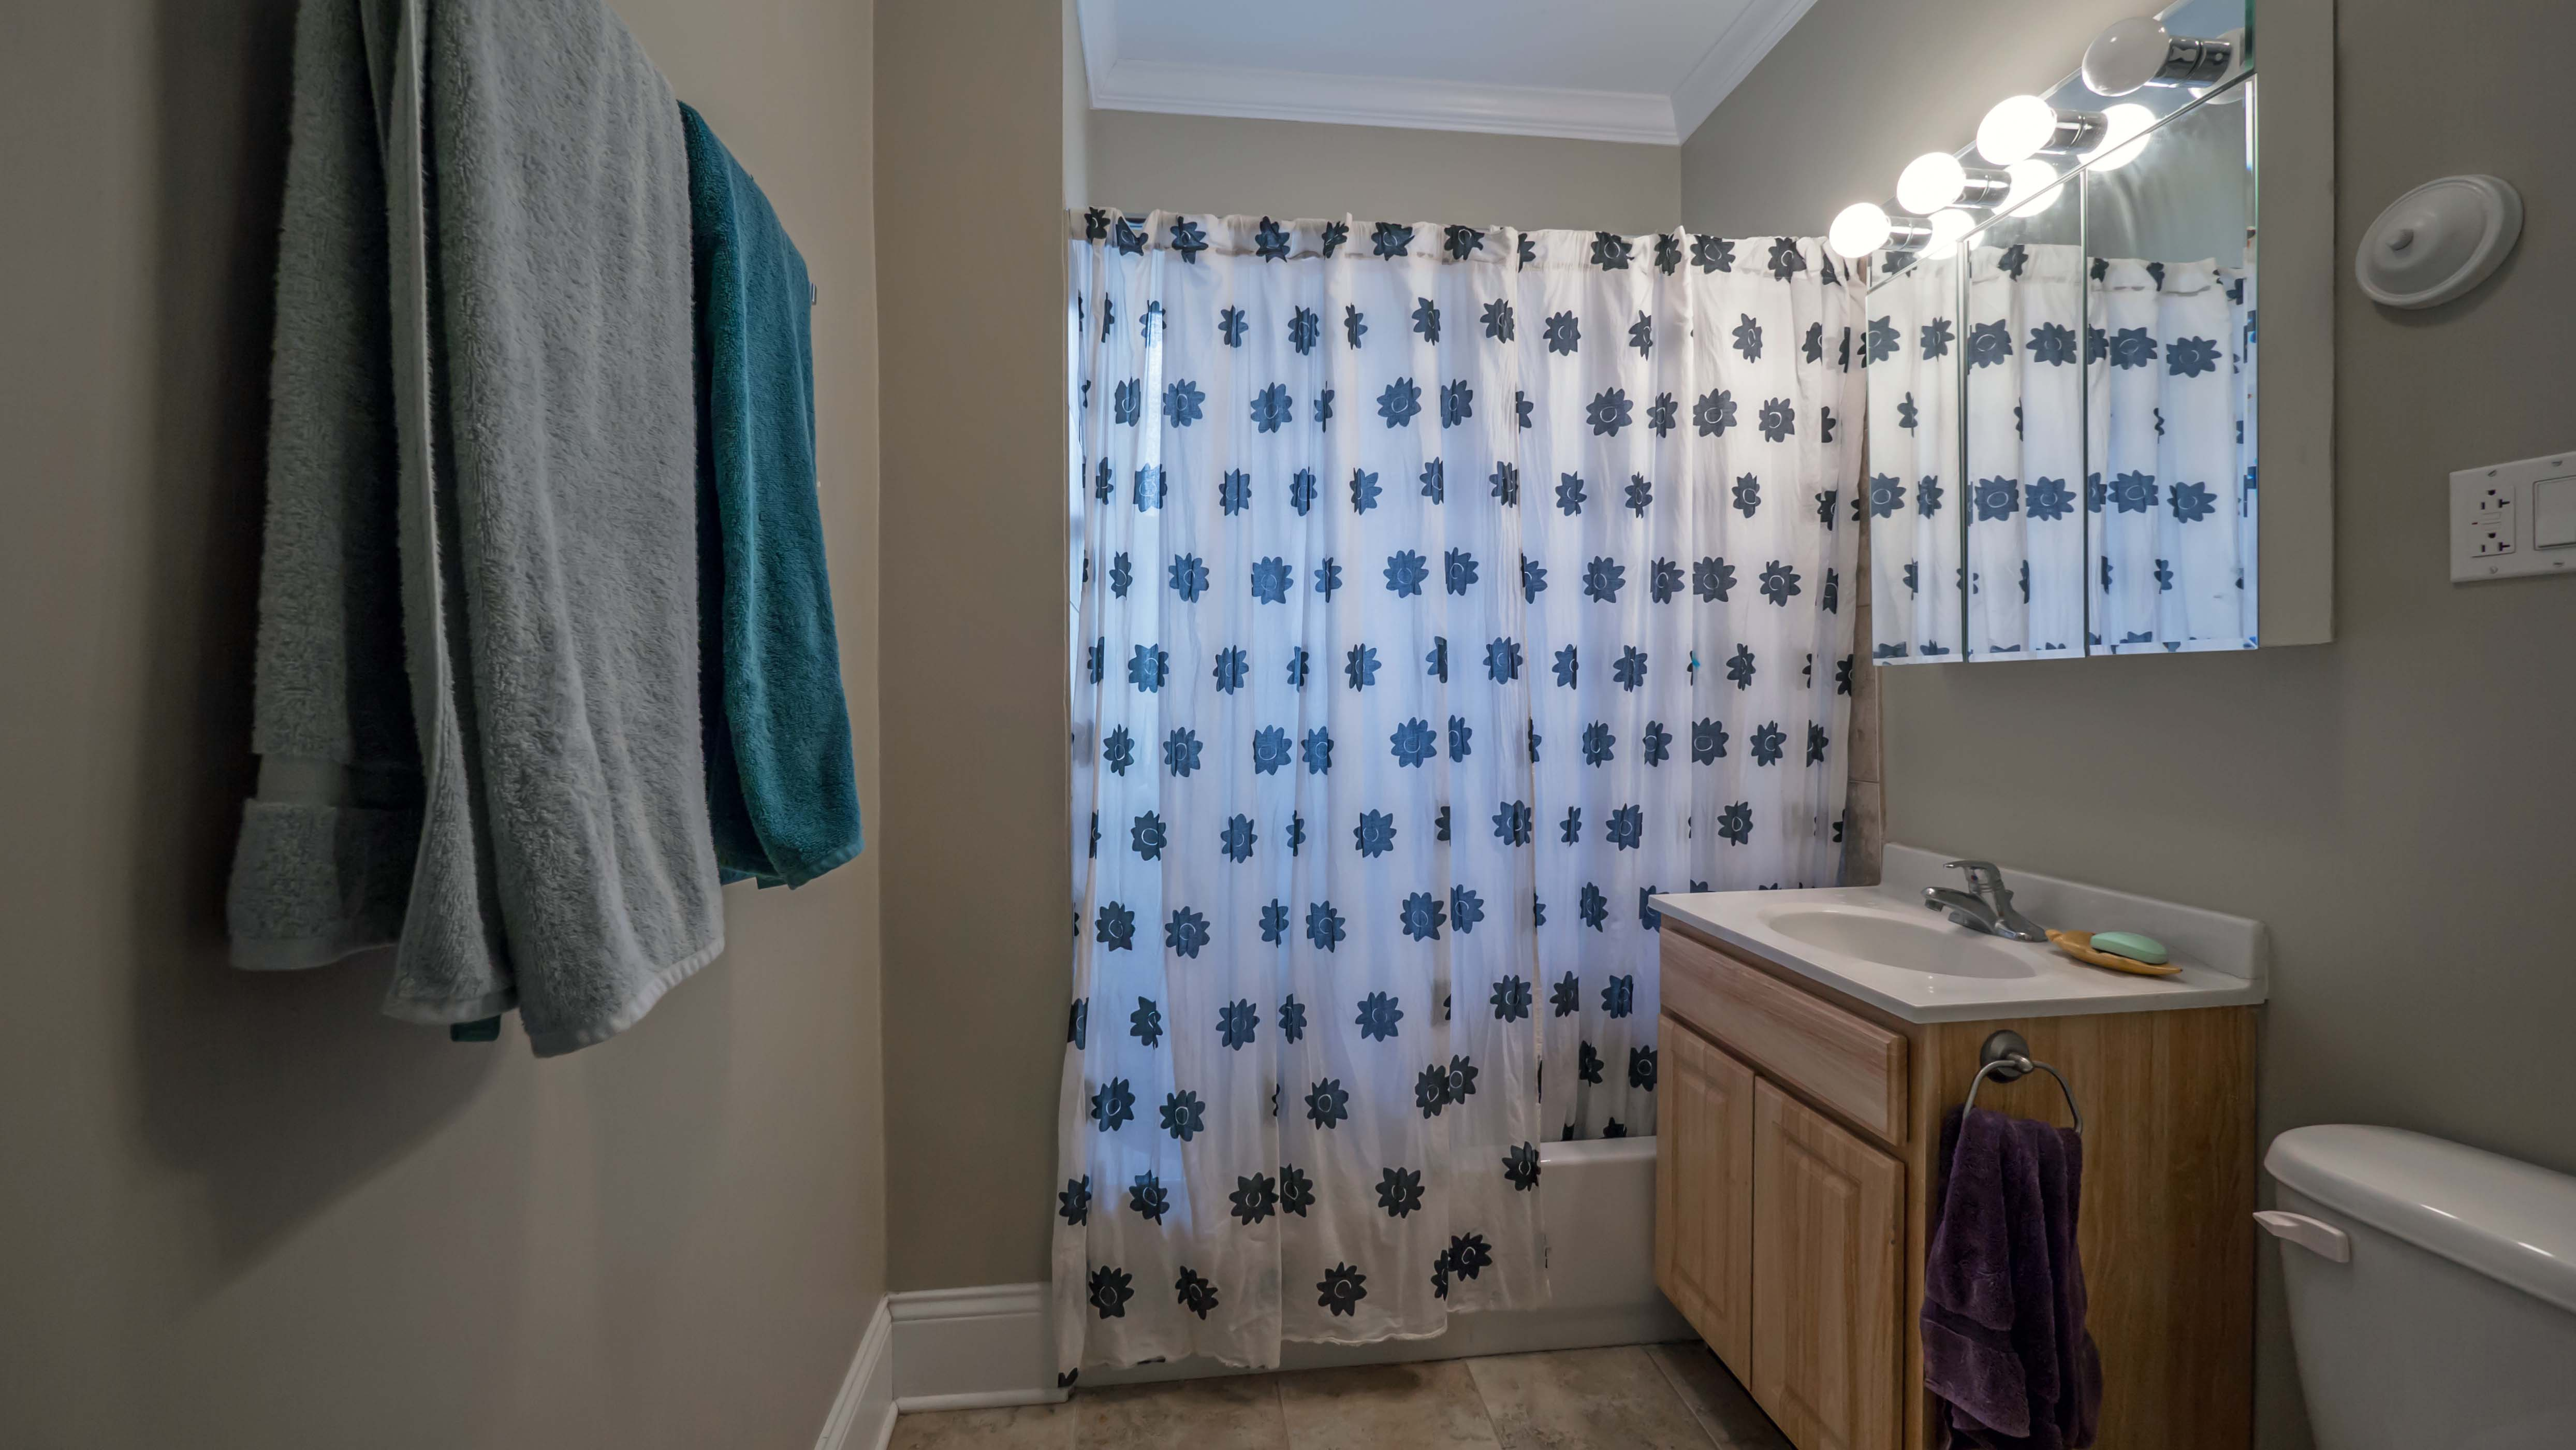 Magnificent Ated Bathrooms With Shower Curtains Gallery - Bathtub ...